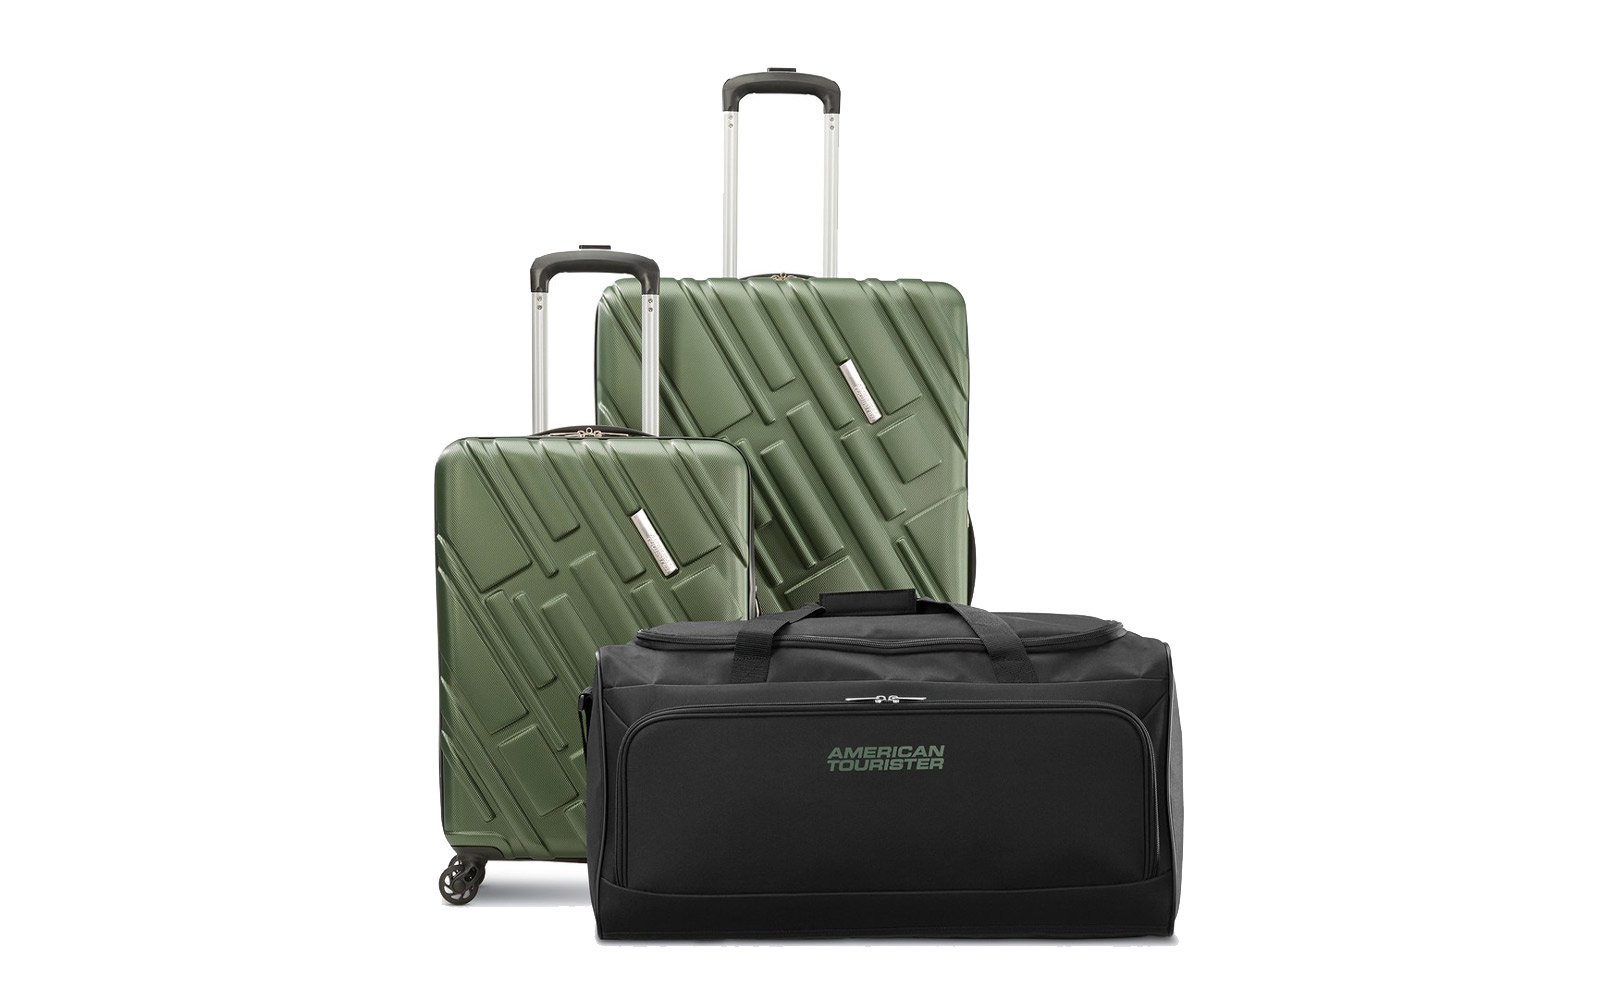 american tourister black friday luggage deals 2018